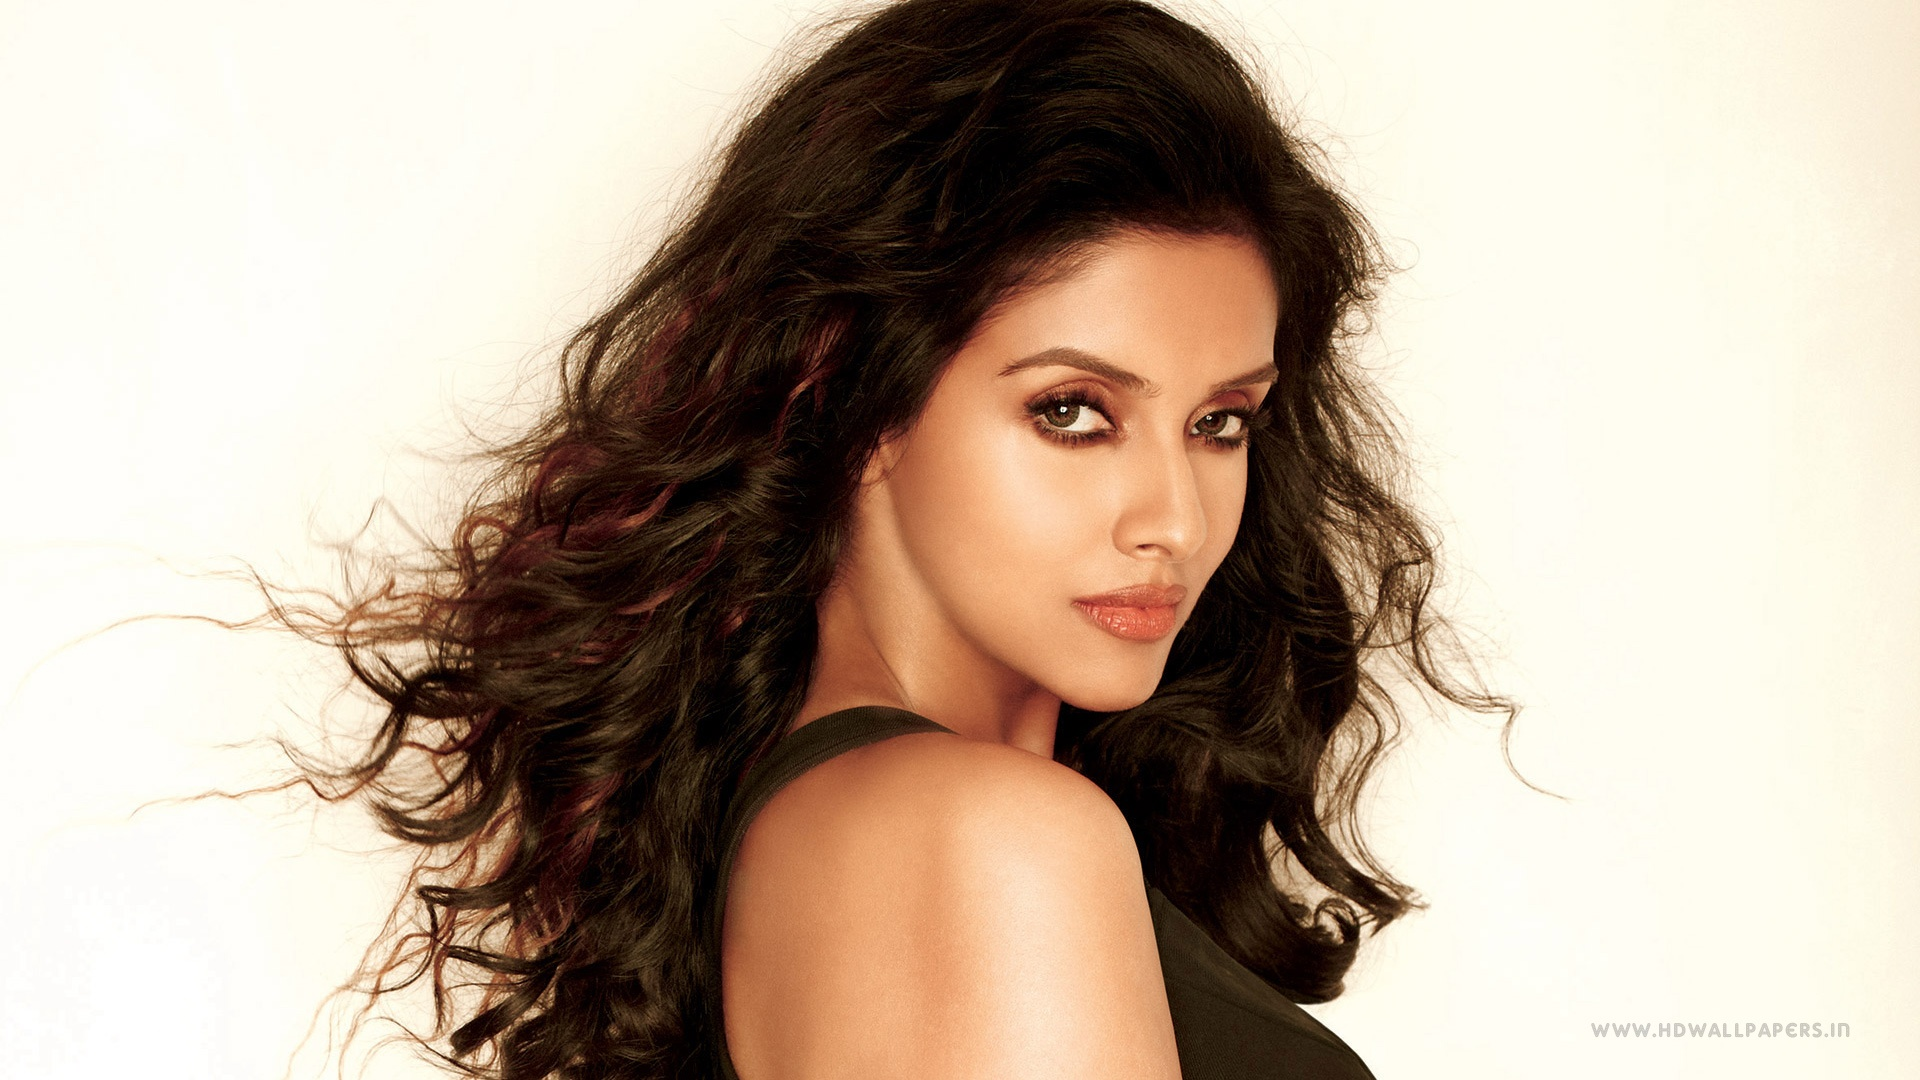 Actress Wallpapers Download Free: Asin Indian Actress Wallpapers In Jpg Format For Free Download